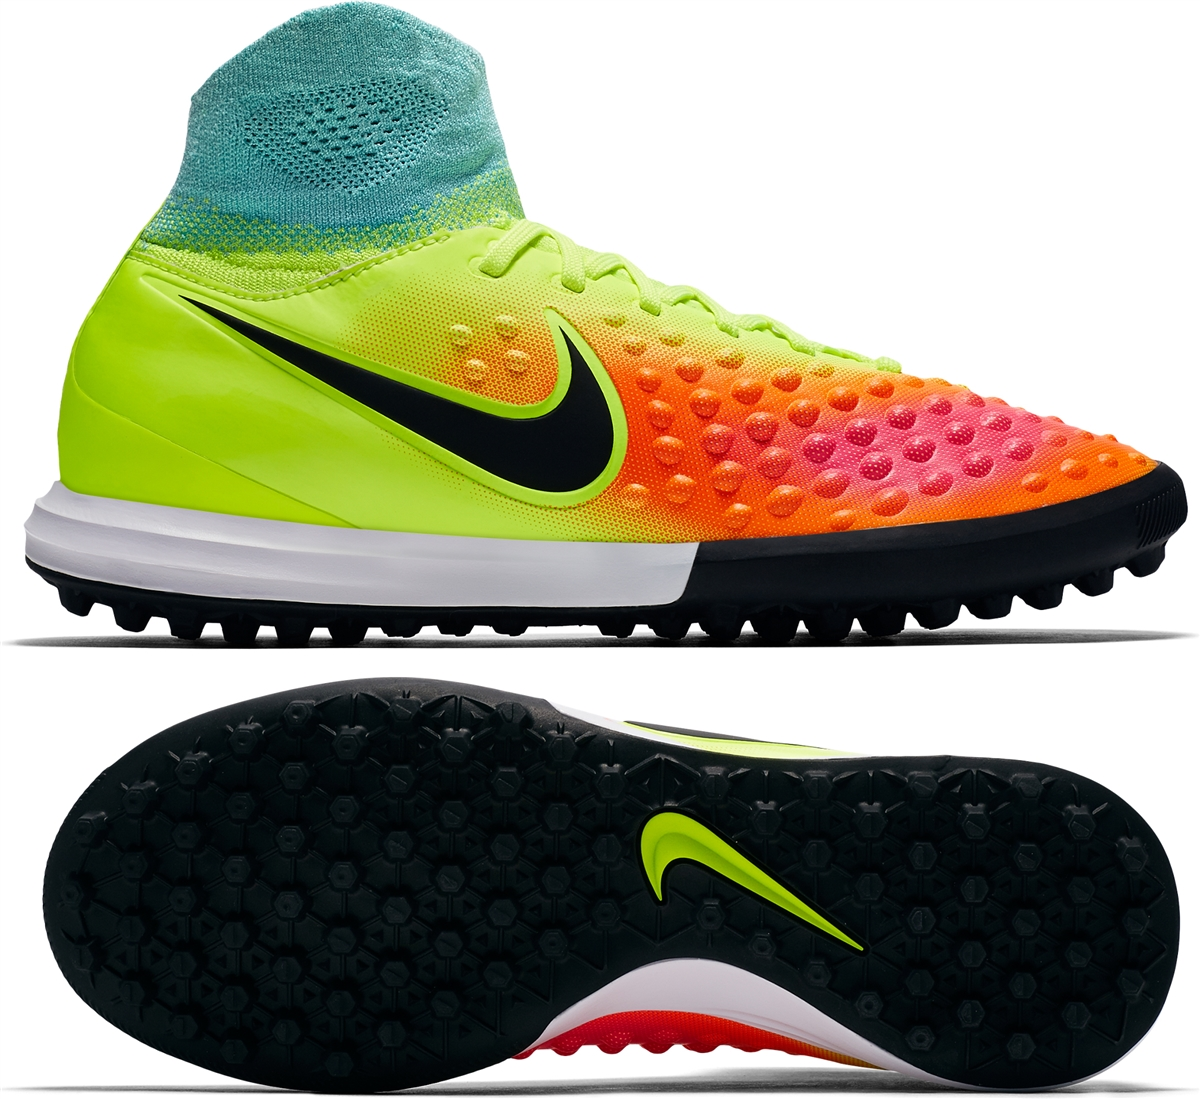 8069c30ca Nike Youth MagistaX Proximo II TF Turf Soccer Shoes (Volt Black ...